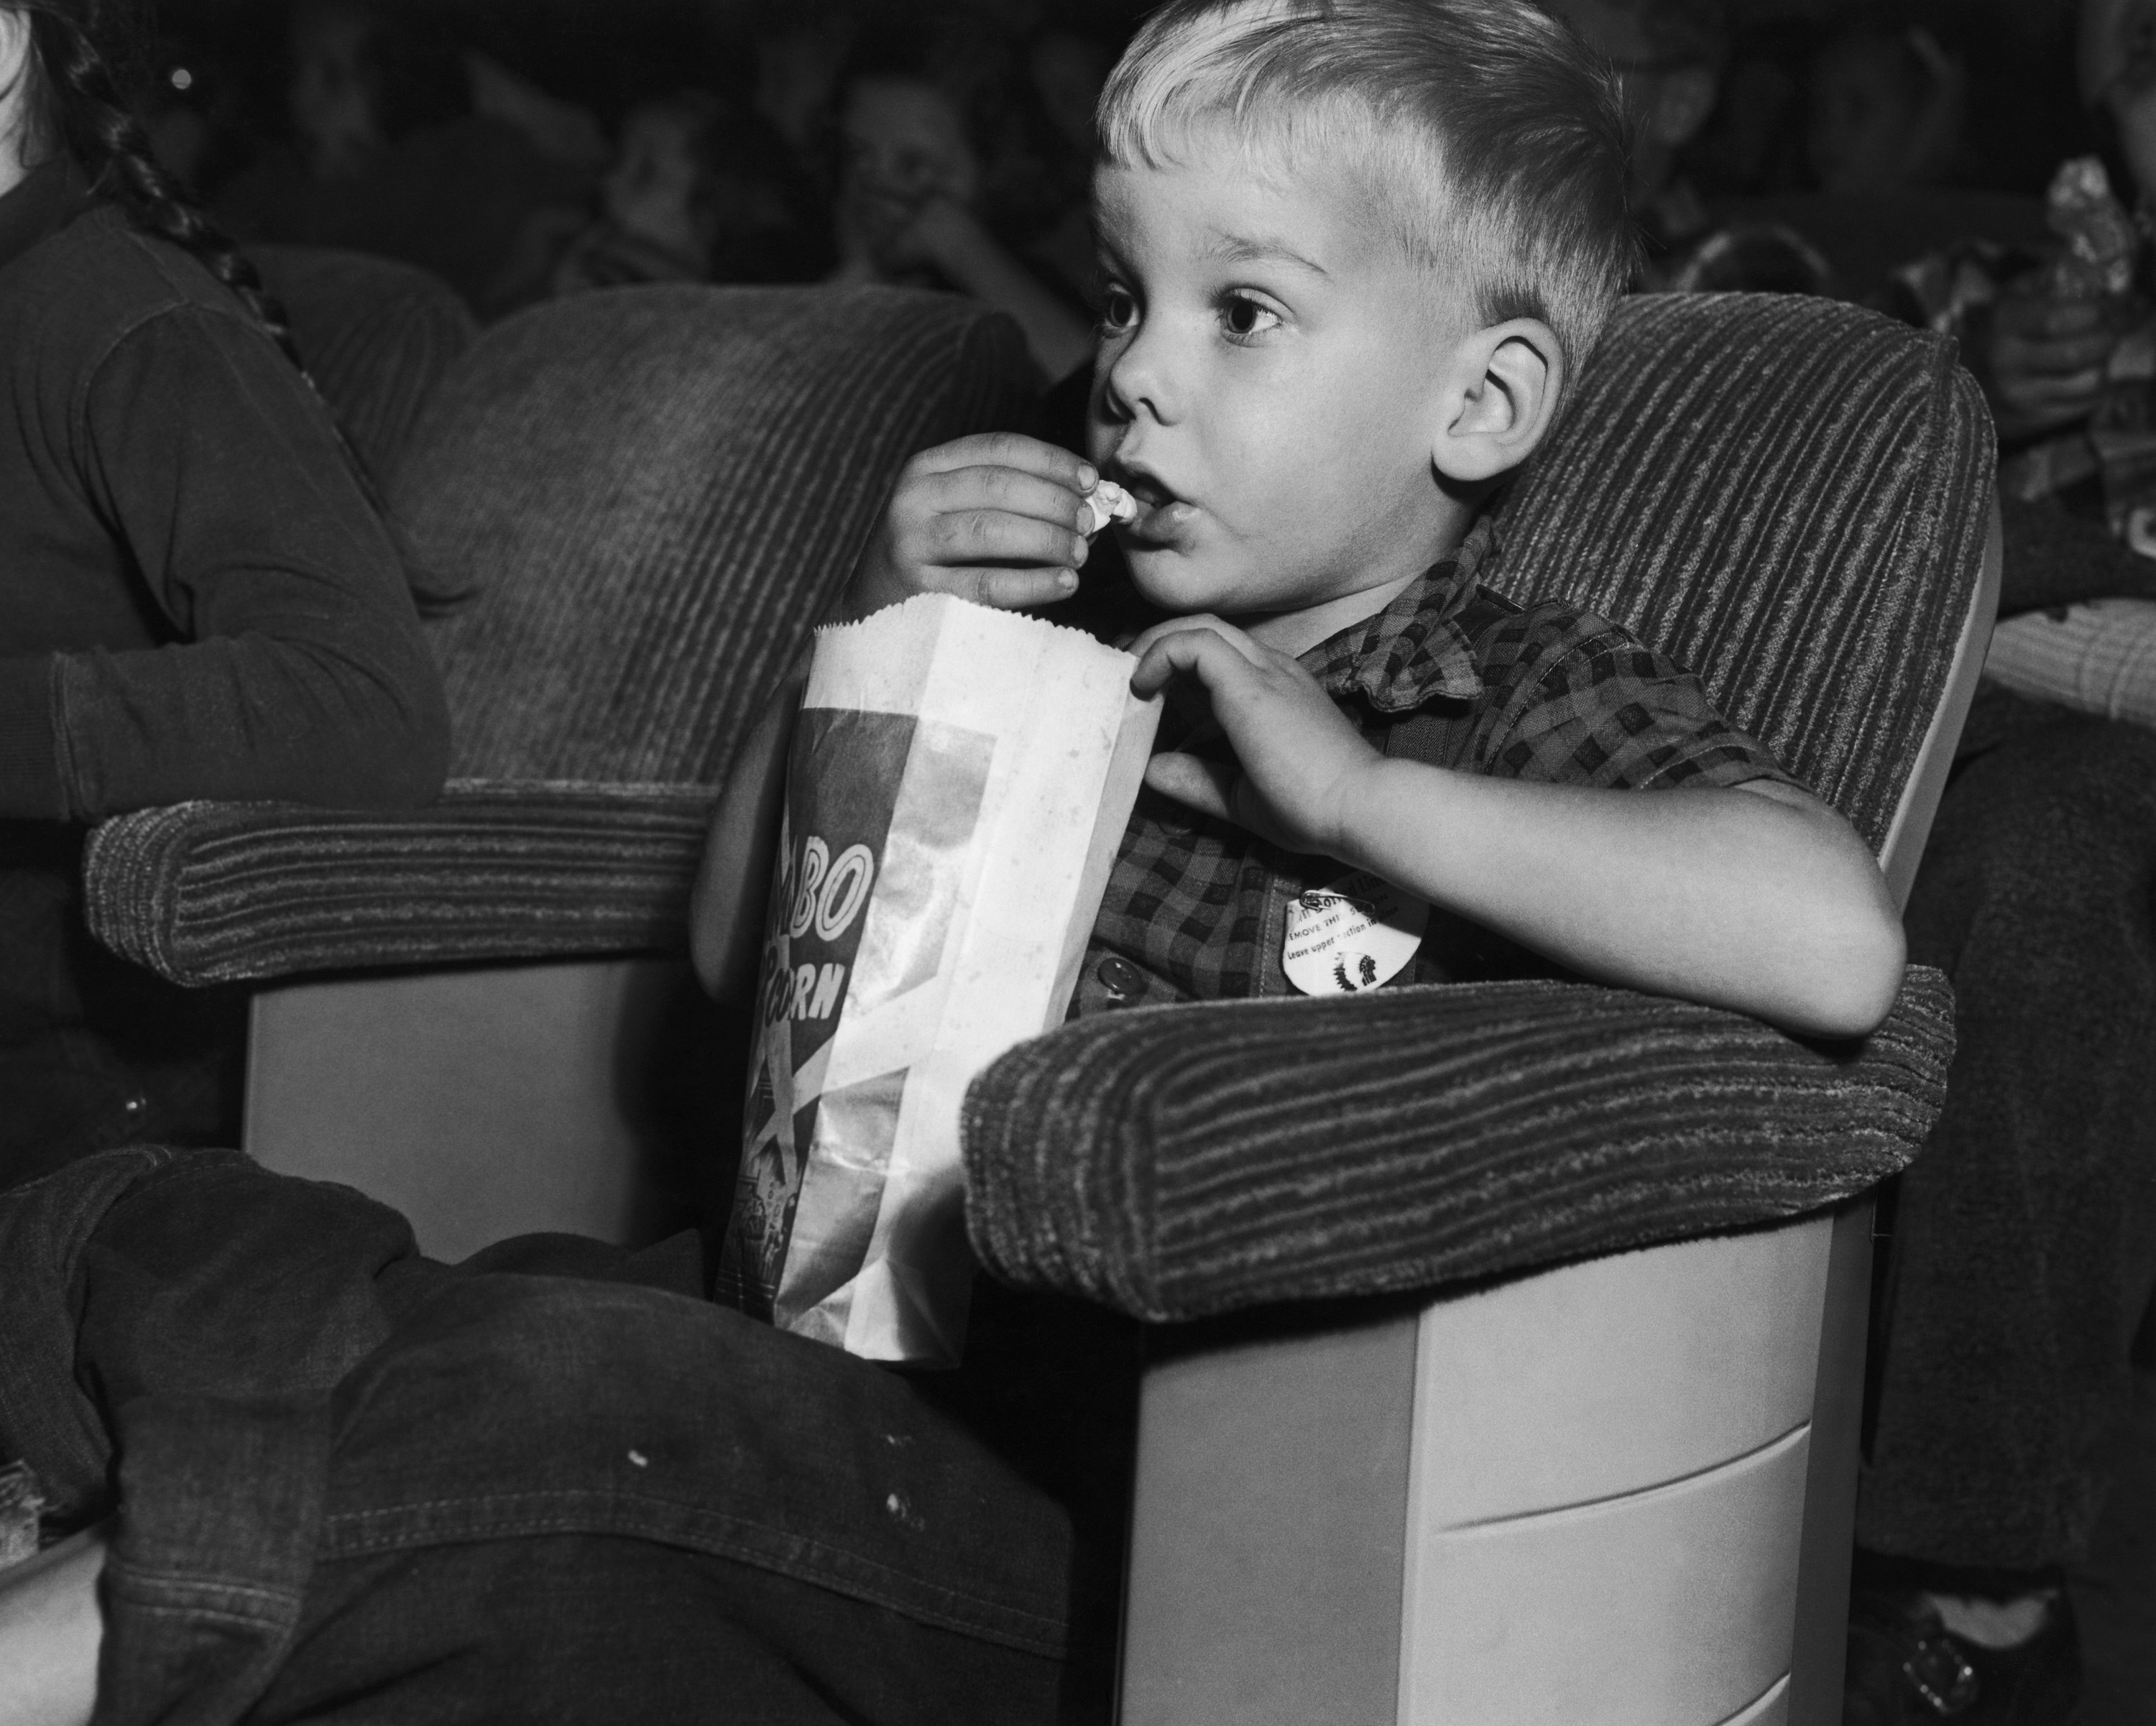 With eyes glued to the screen, a young boy eats a bag of popcorn while attending a Saturday matinee at the movie theater